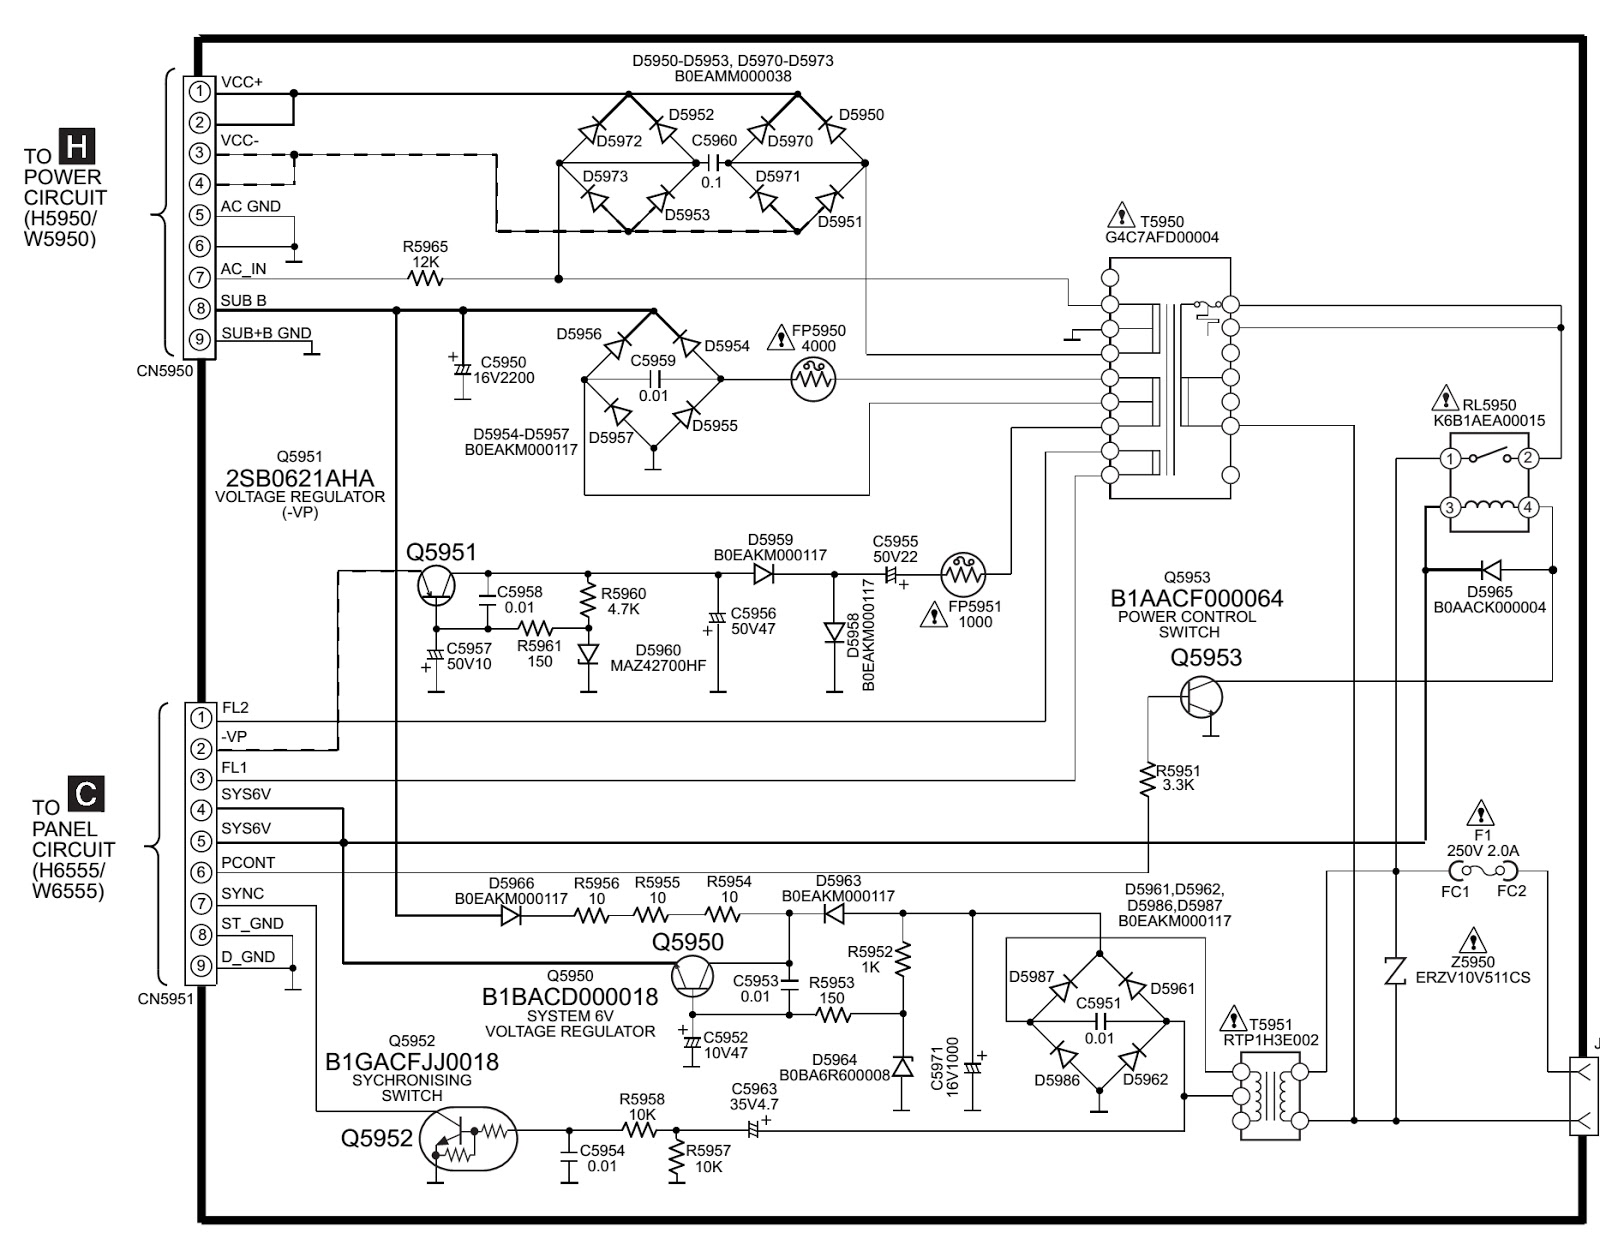 small resolution of panasonic schematic diagram wiring diagram row panasonic microwave oven schematic diagram panasonic sa ak630 schematic power